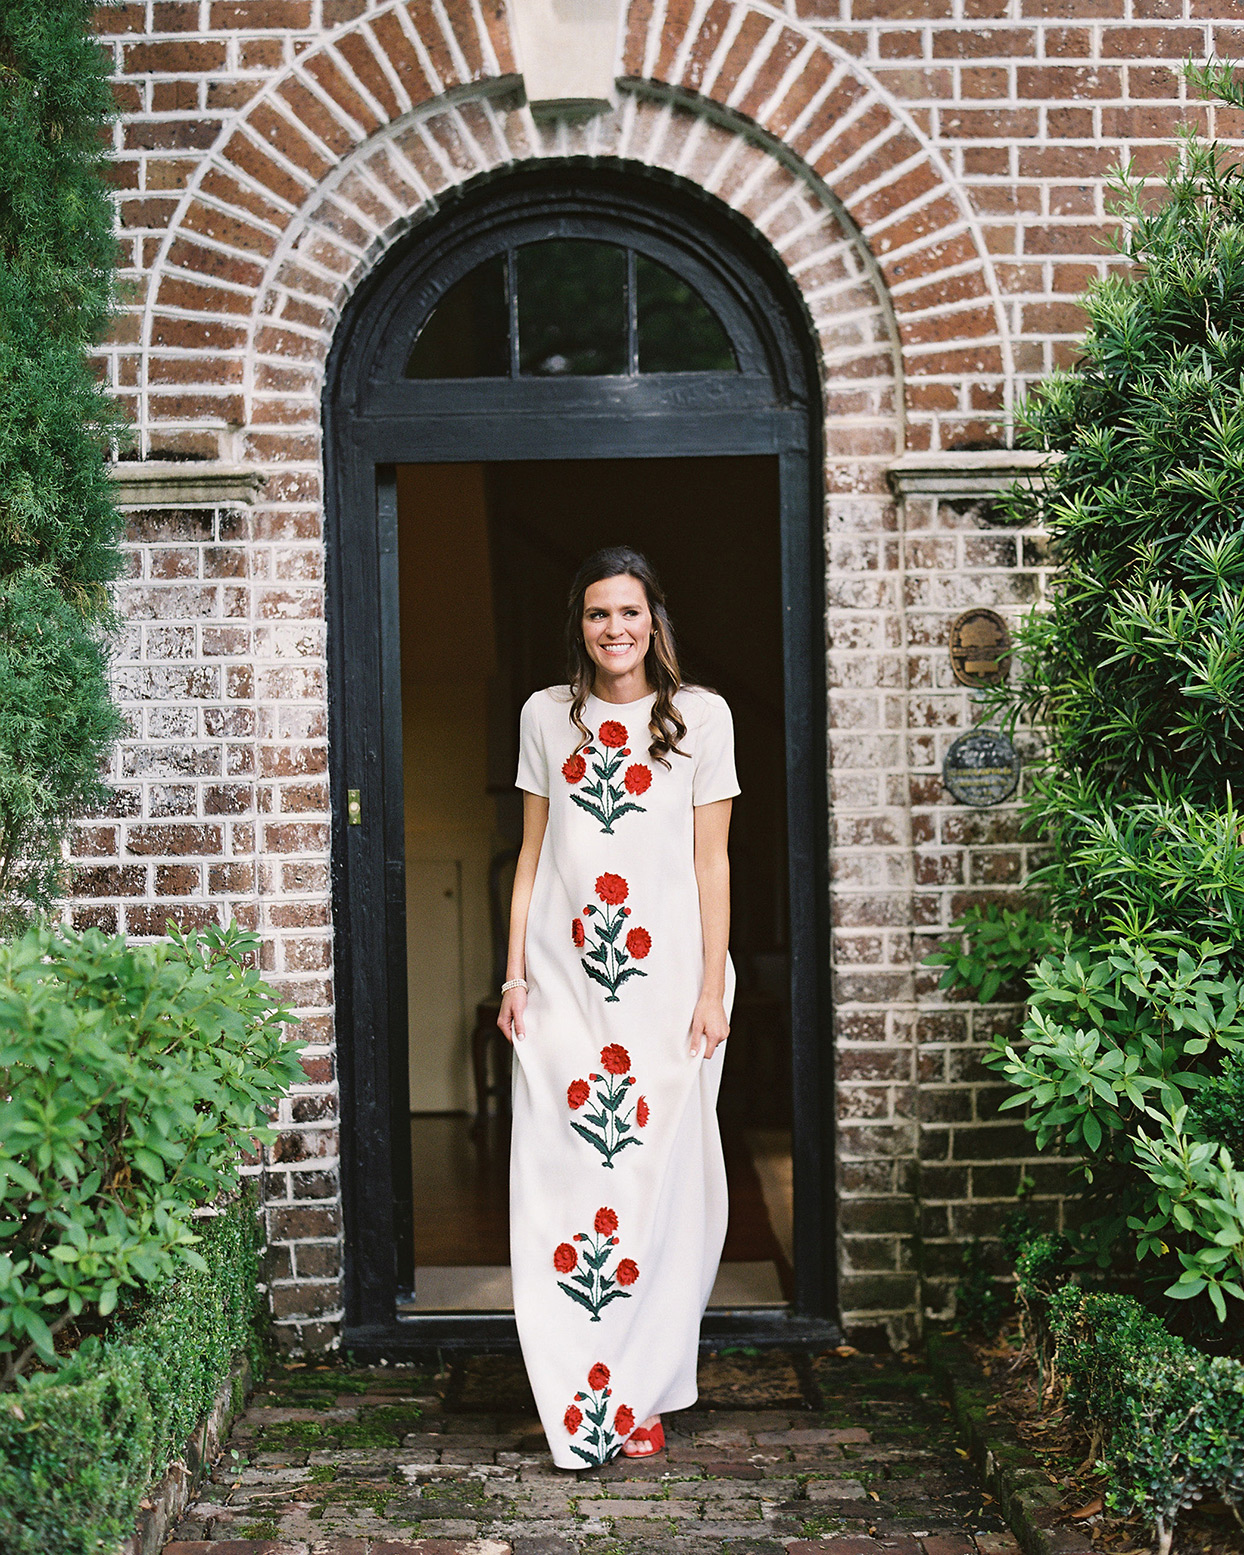 beverly steve bride's wedding dress white with red flowers